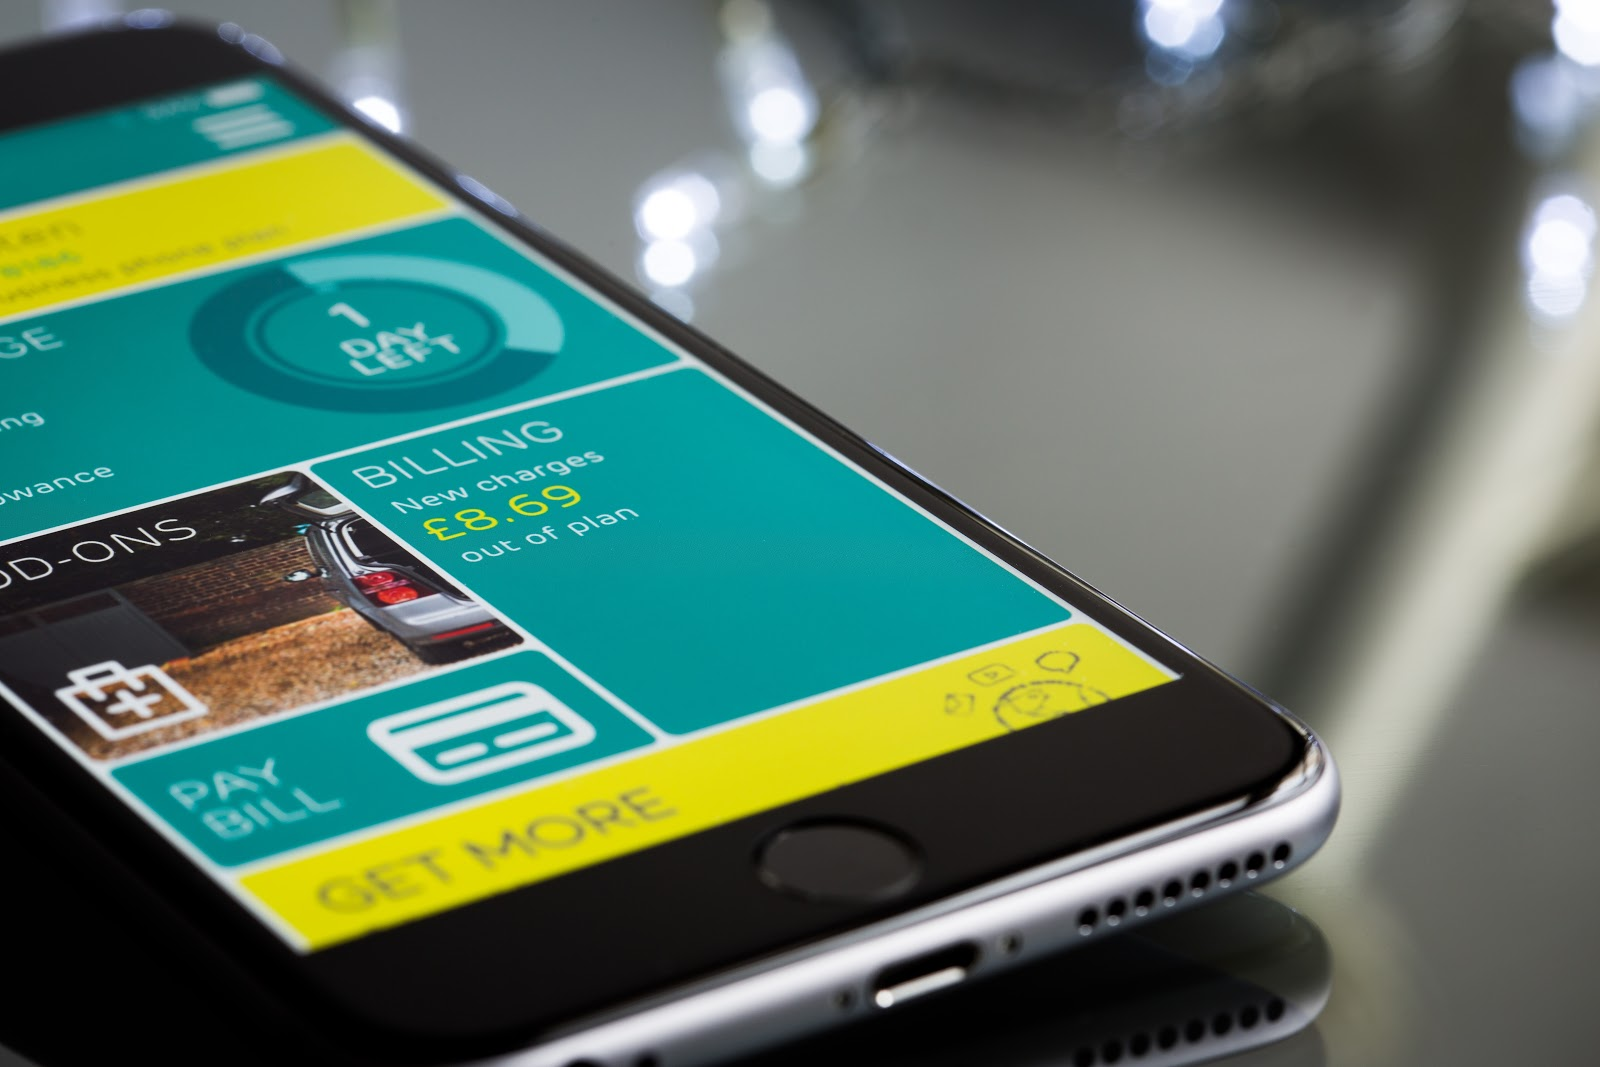 An app displayed on an iPhone